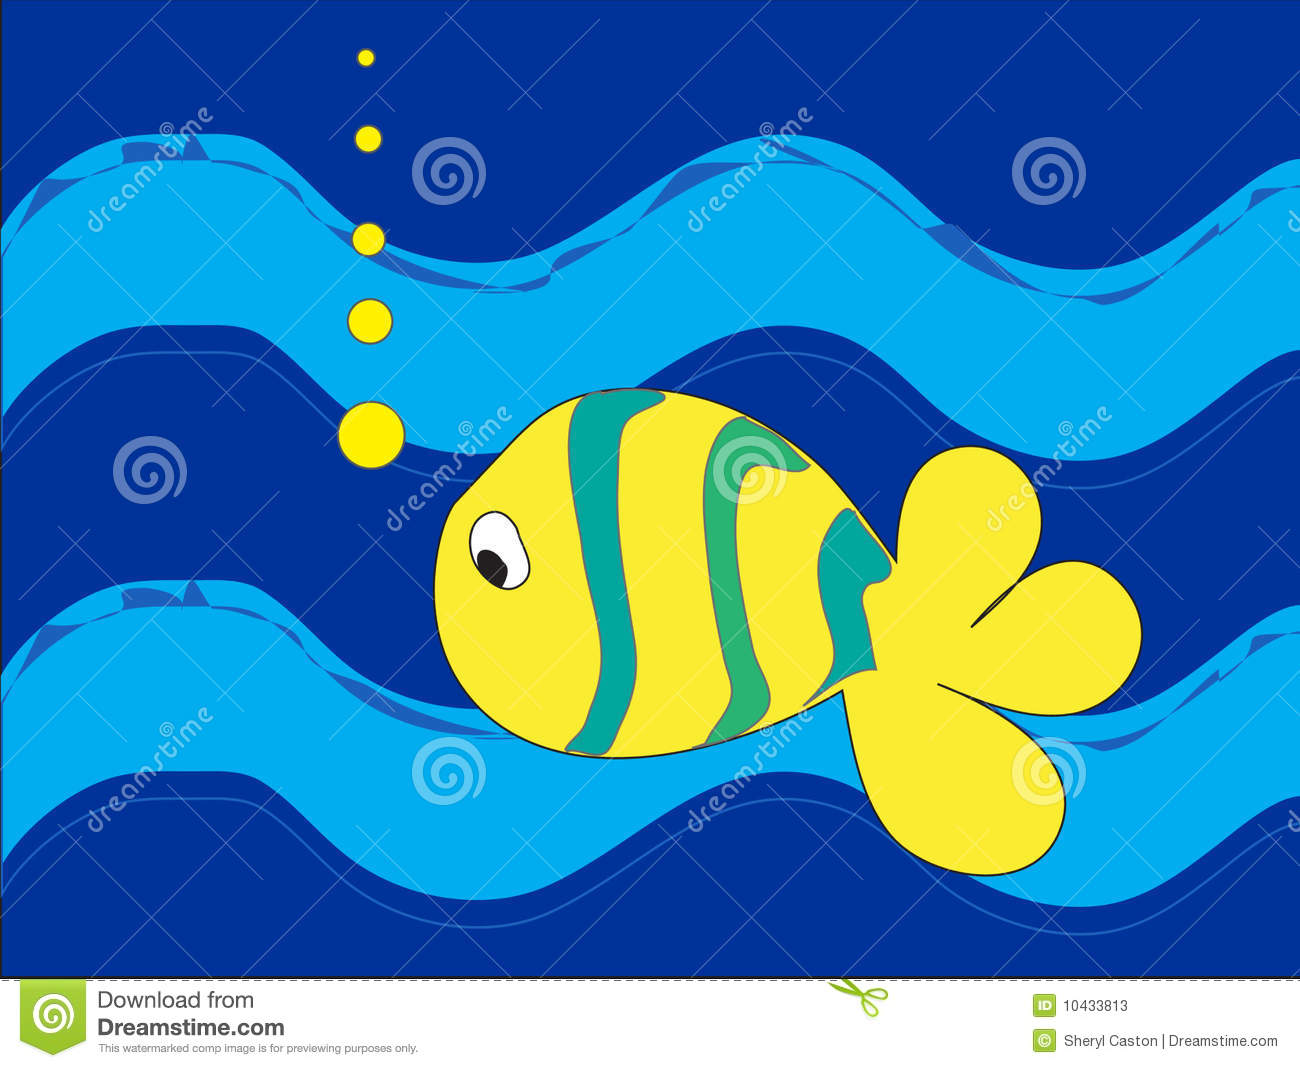 Lonely Fish - Bright Colored Stock Photos - Image: 10433813: dreamstime.com/stock-photos-lonely-fish-bright-colored-image10433813